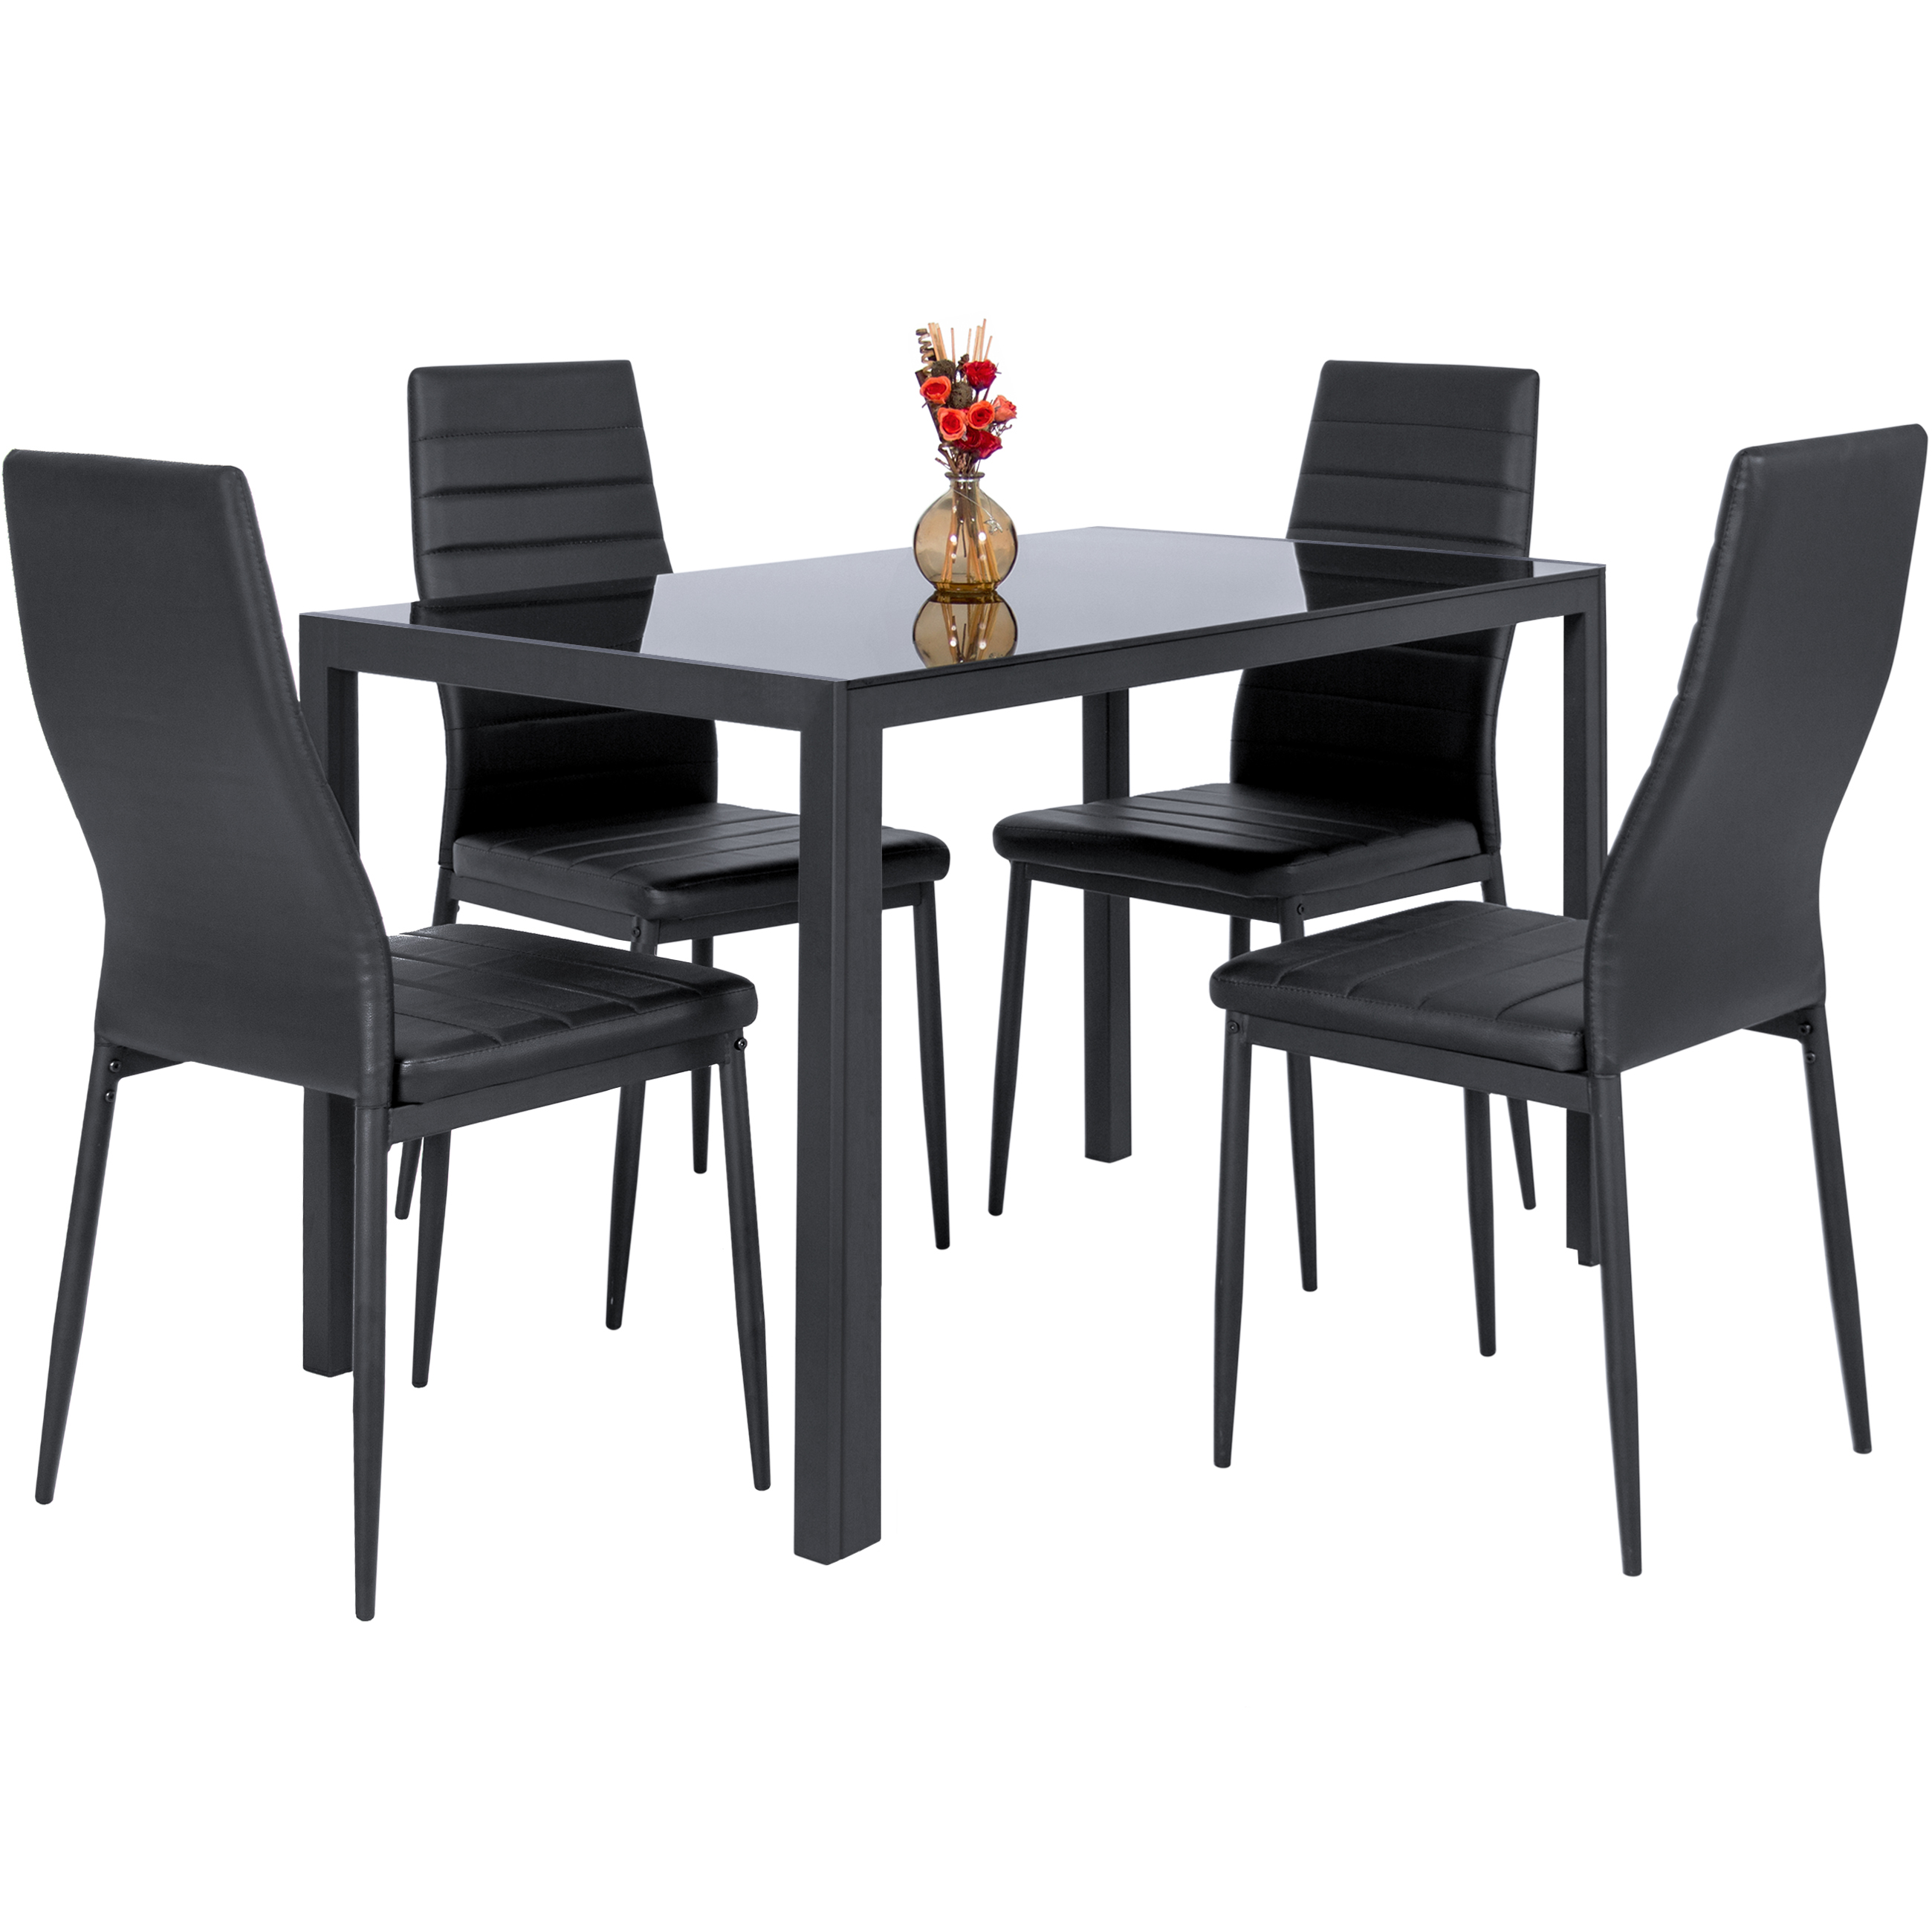 Best Choice Products 5 Piece Kitchen Dining Table Set W/ Glass Top And 4 Leather  sc 1 st  Walmart & Dining Room Sets - Walmart.com